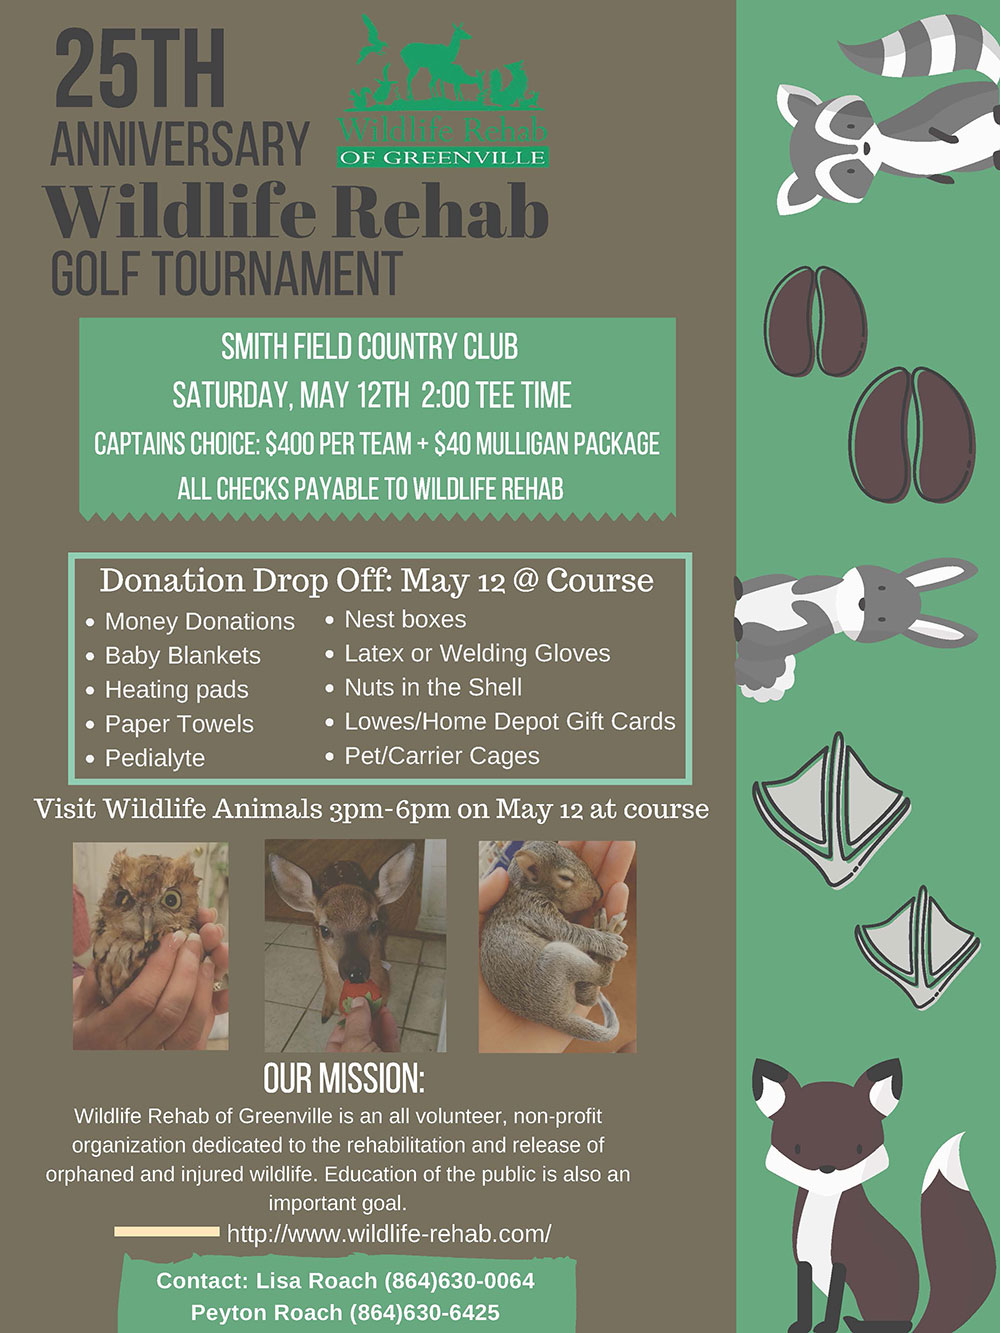 Wildlife Rehab 25th celebration golf tournament